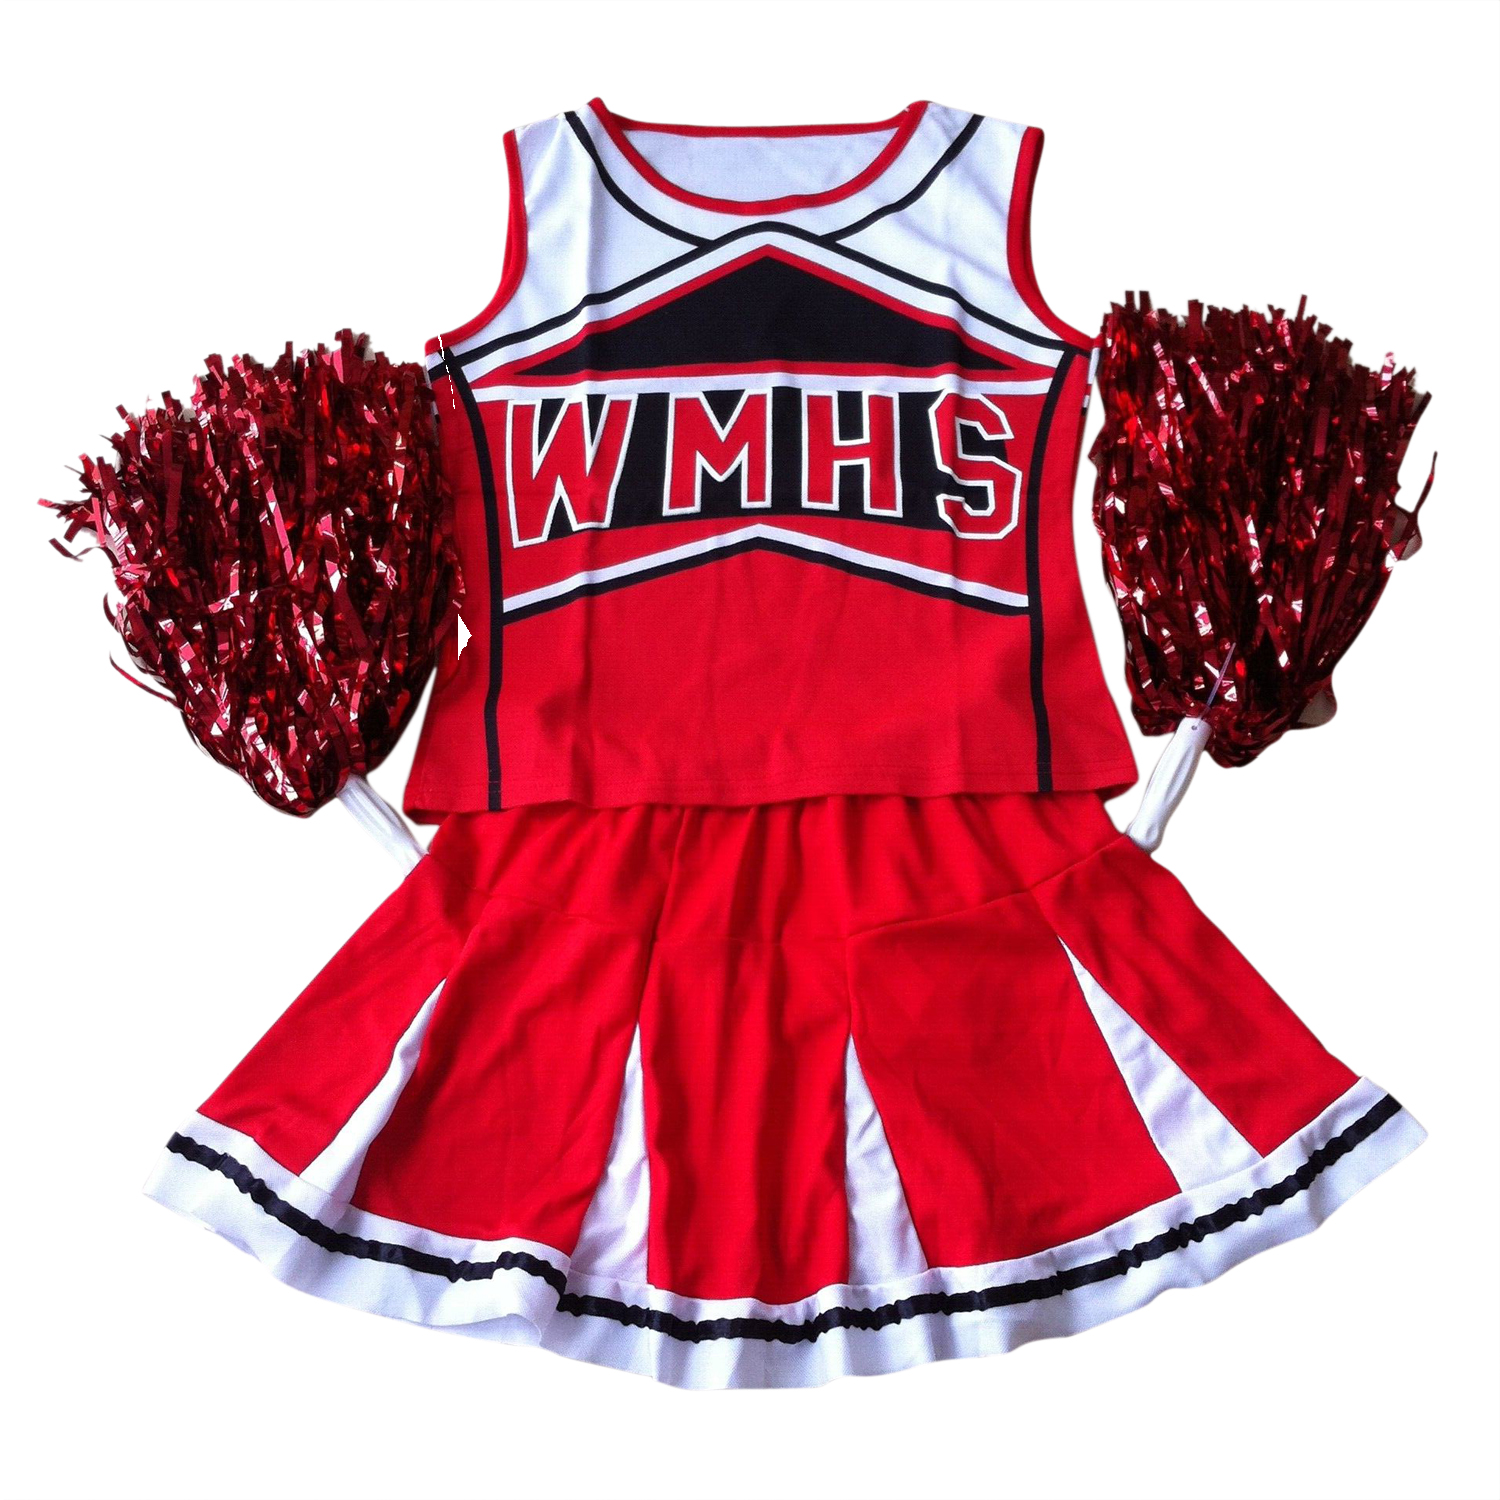 SODIAL(R)Tank top Petticoat Pom cheerleader cheer leaders L (38-40) 2 piece suit new red costume ...